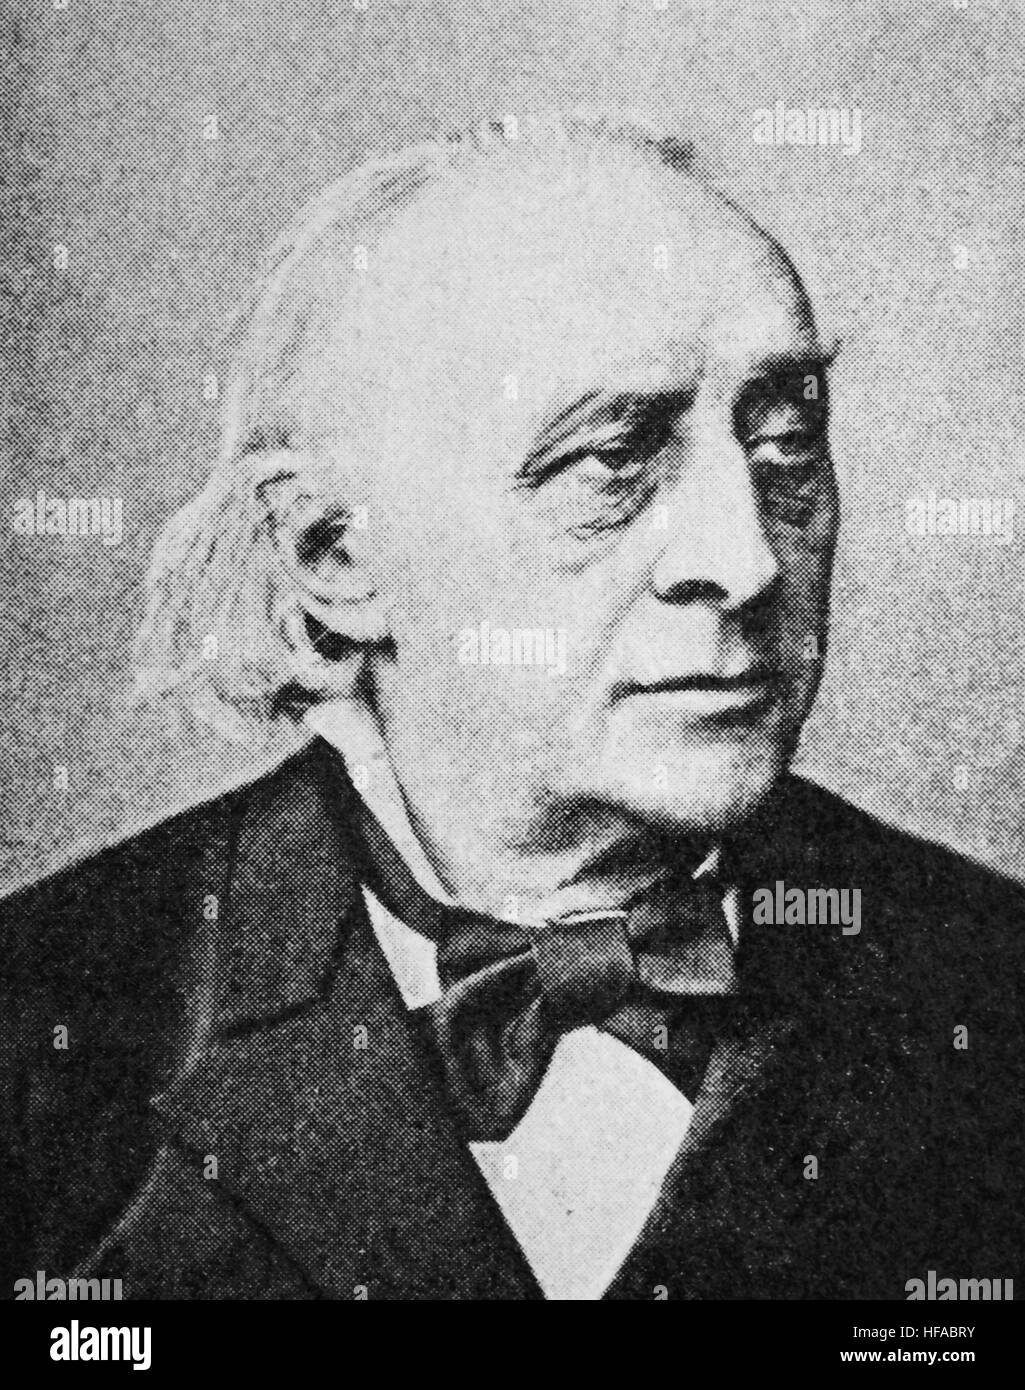 Christoph Ernst Luthardt, 1823-1902, German Lutheran theologian, reproduction photo from the year 1895, digital - Stock Image